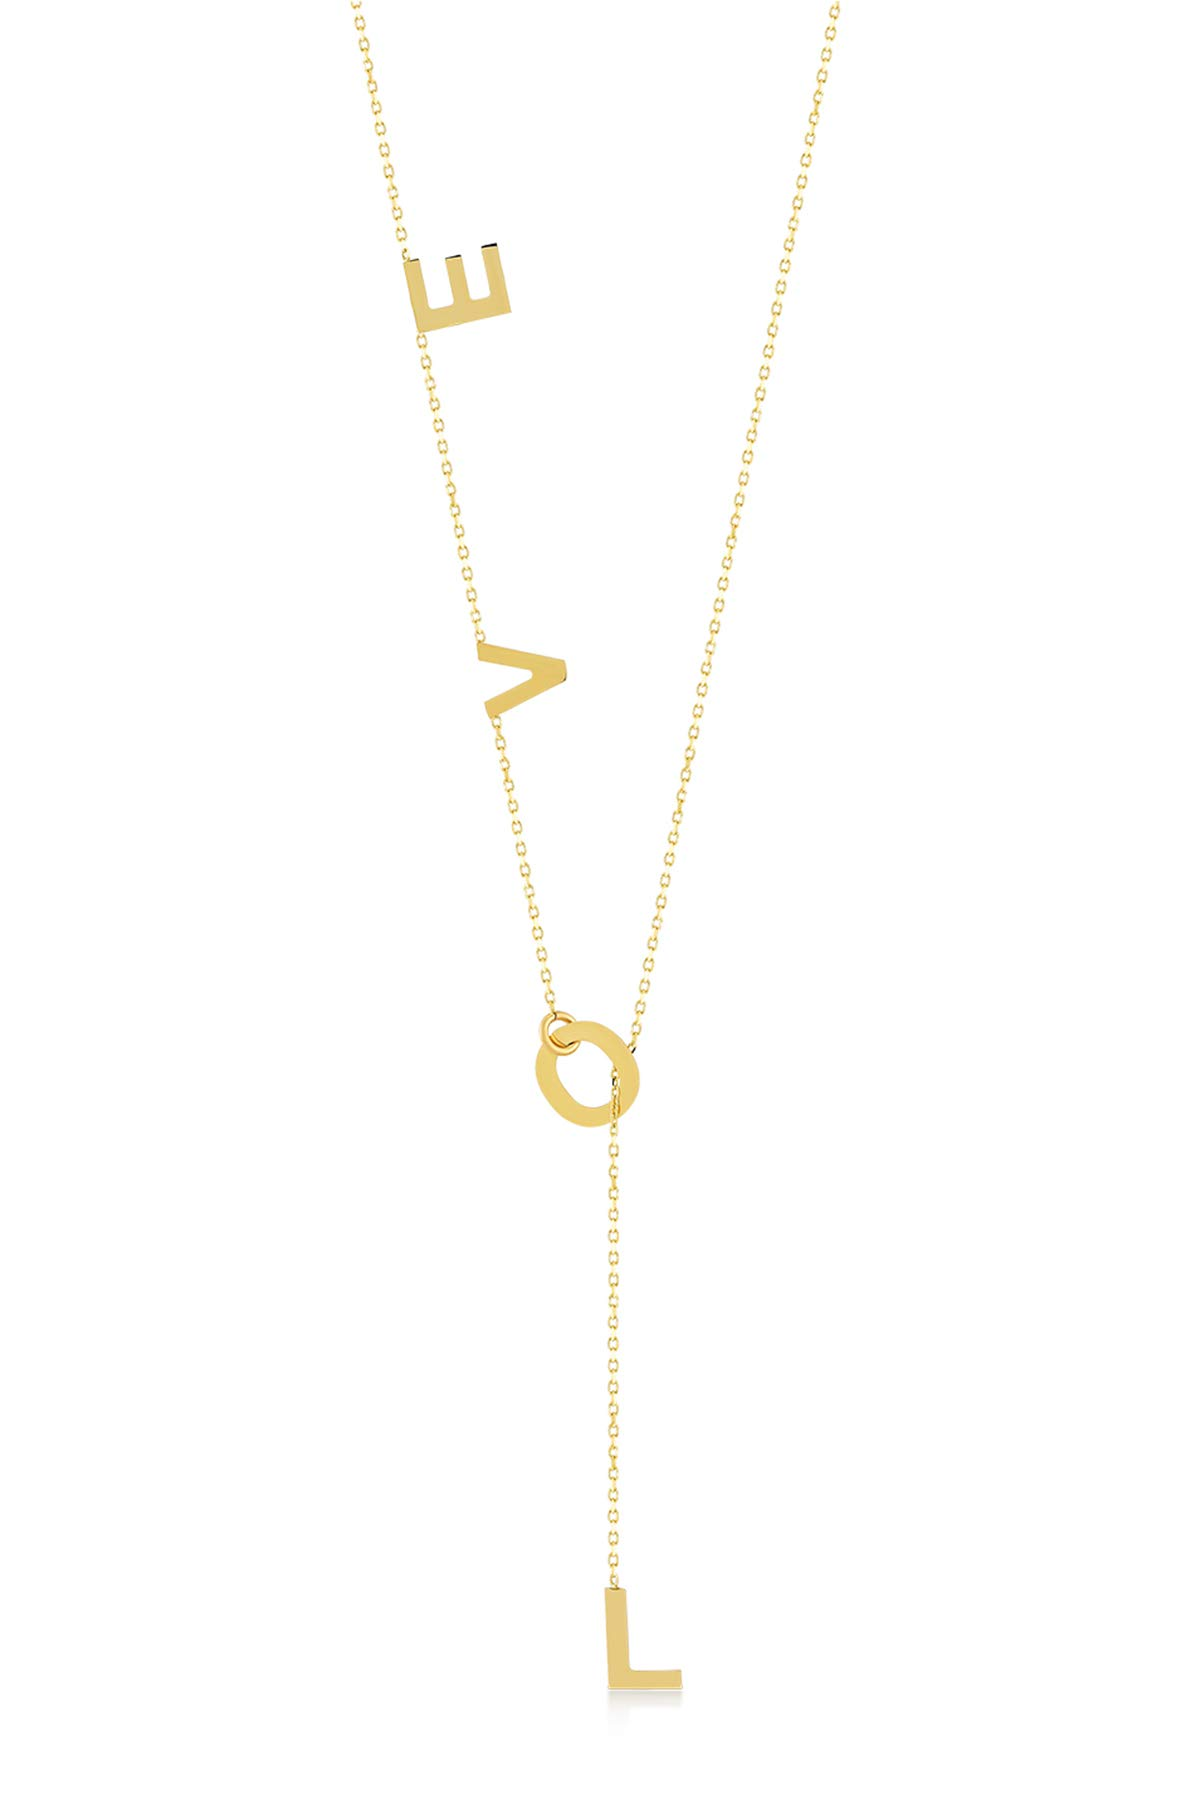 GELIN 14k Solid Gold Hanging LOVE Character Y Necklace for Women, 18'' by Gelin